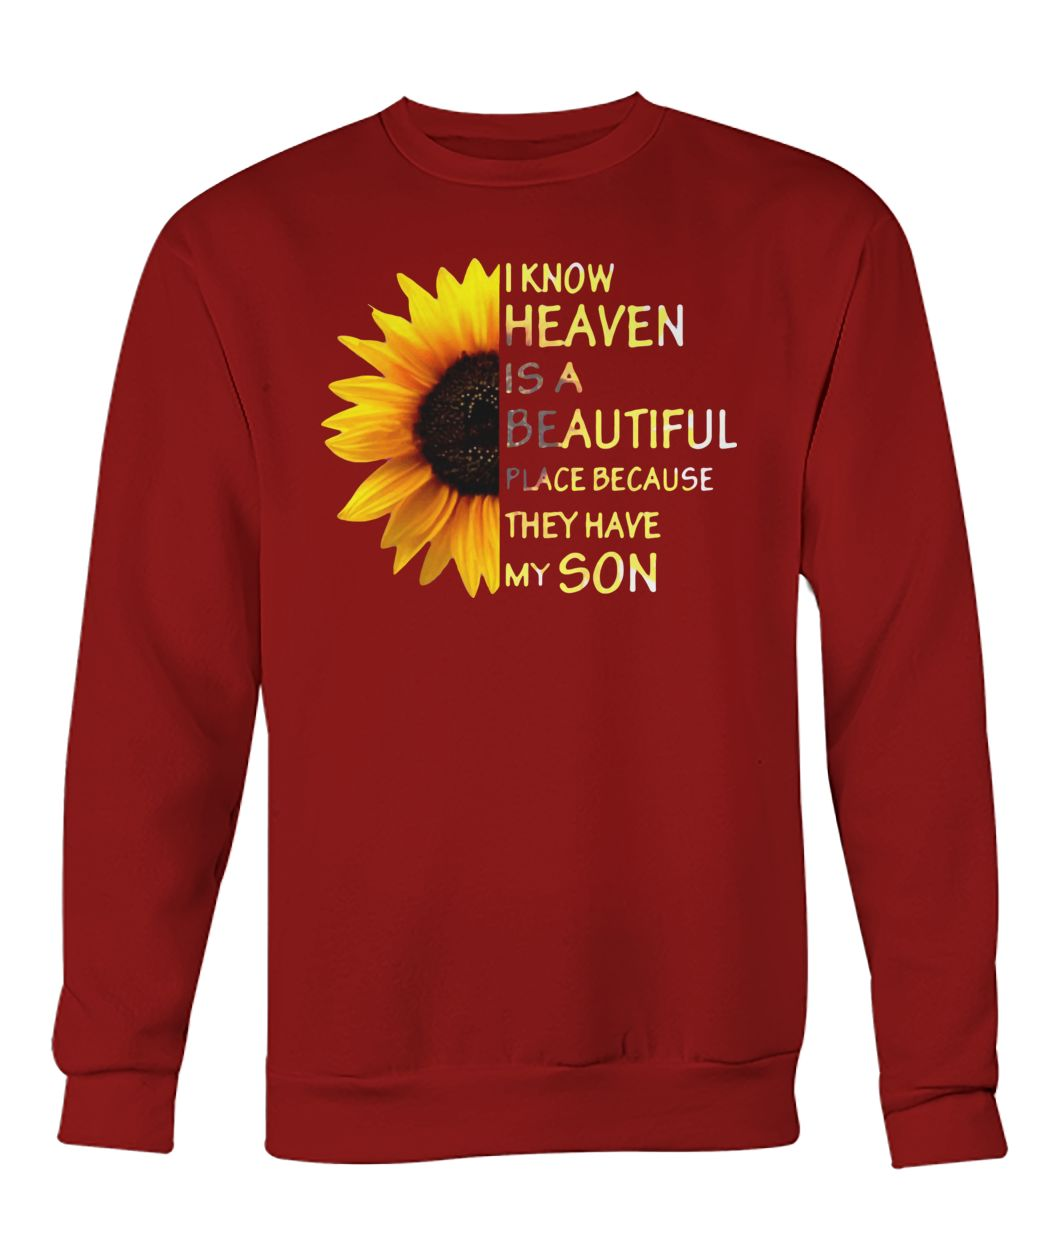 Sunflower I know heaven is a beautiful place because they have my son crew neck sweatshirt